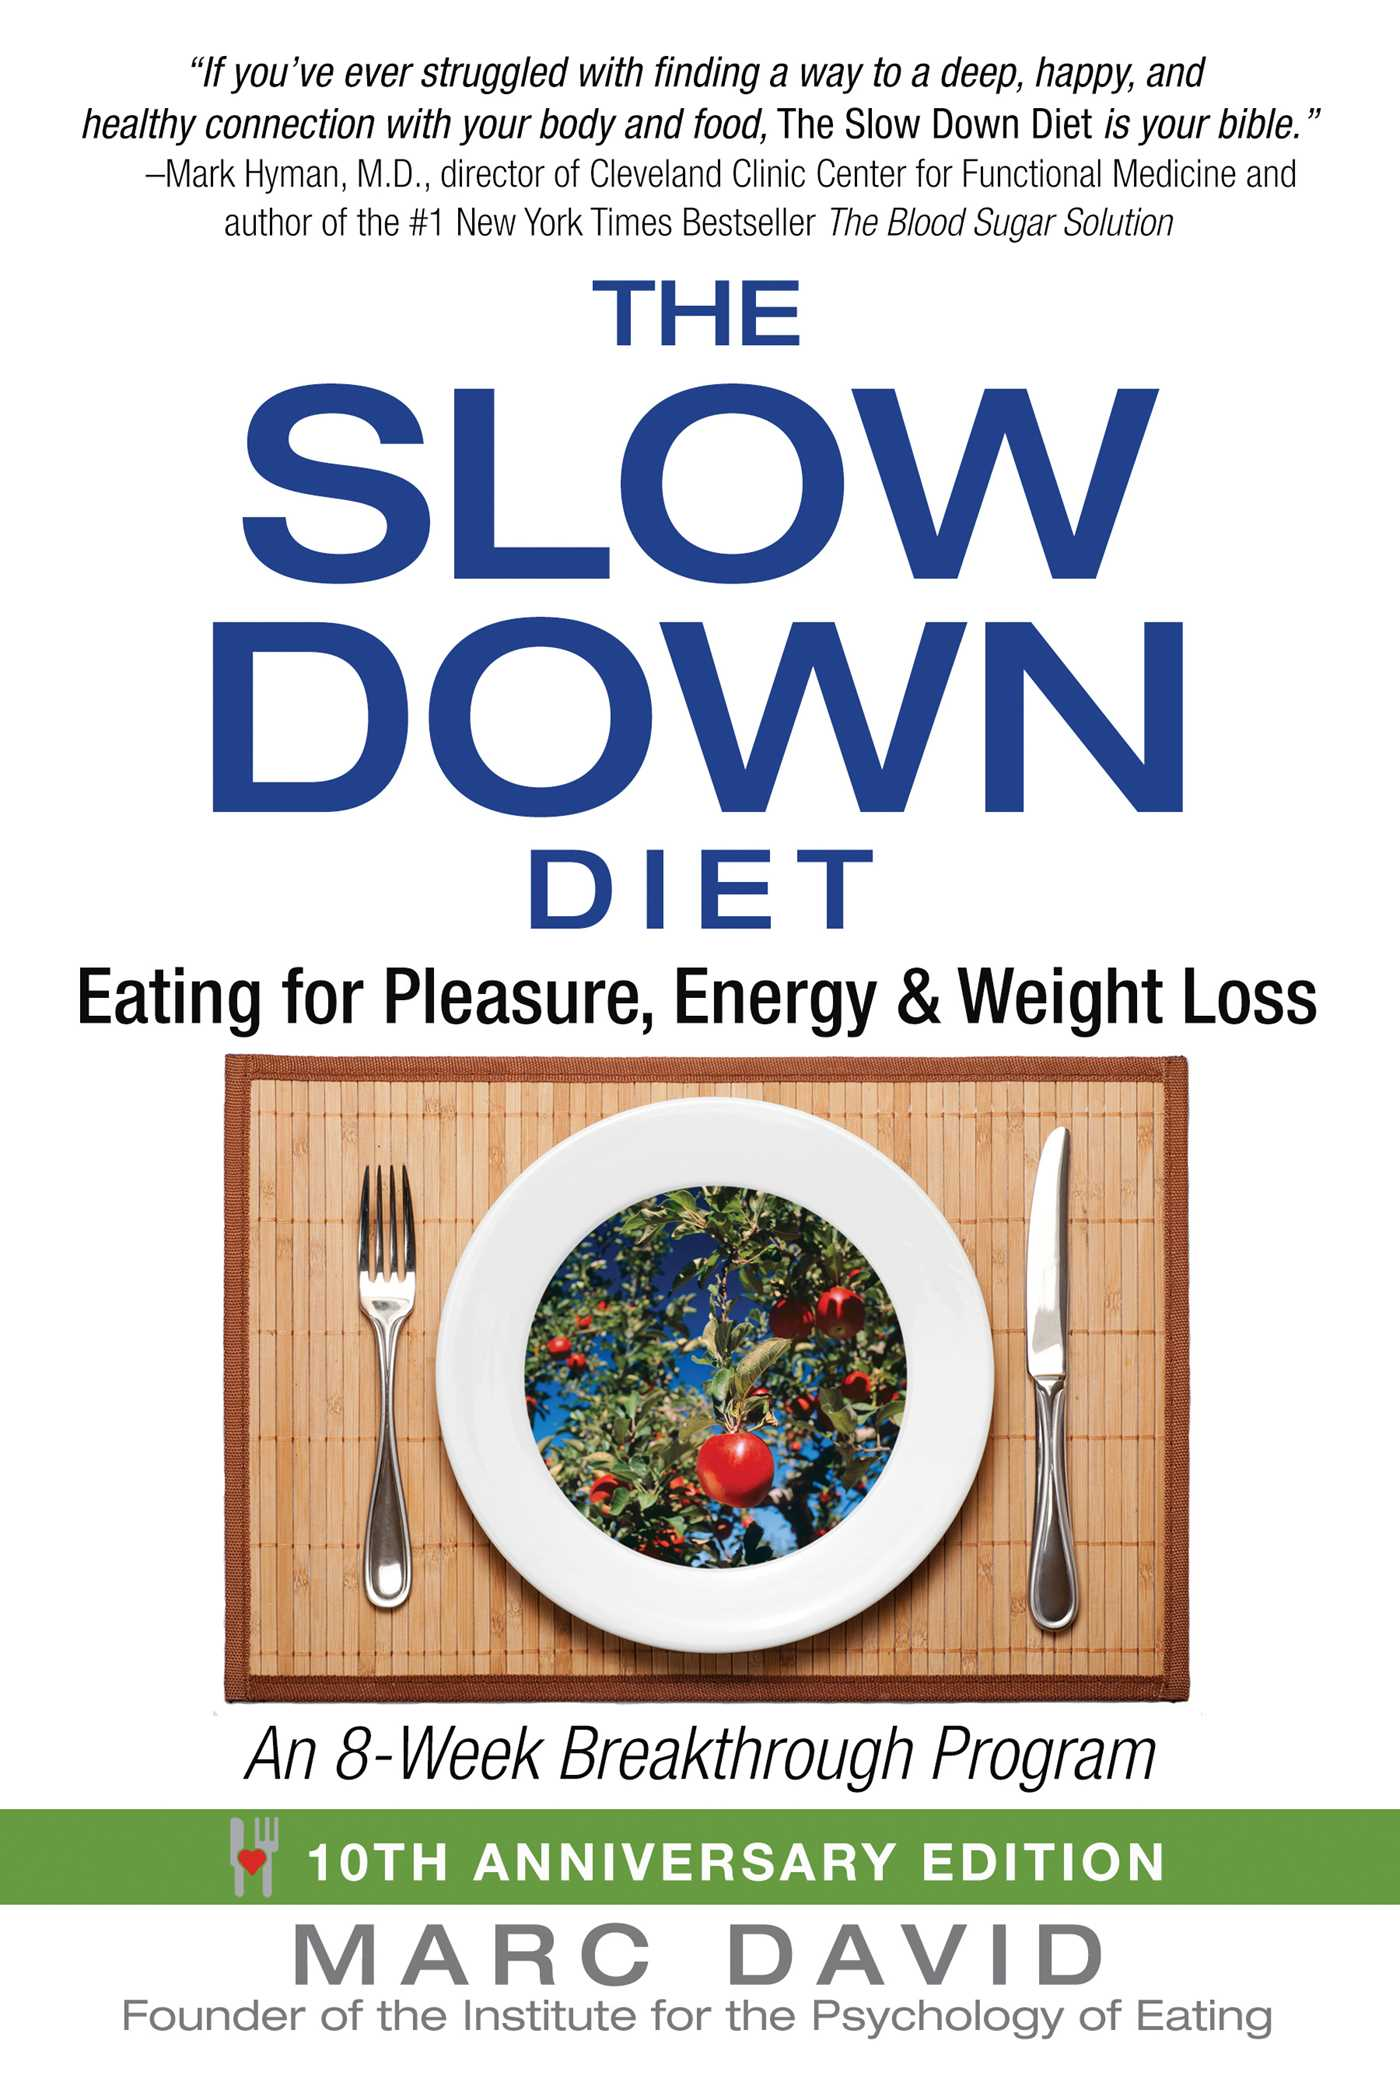 The slow down diet 9781620555088 hr